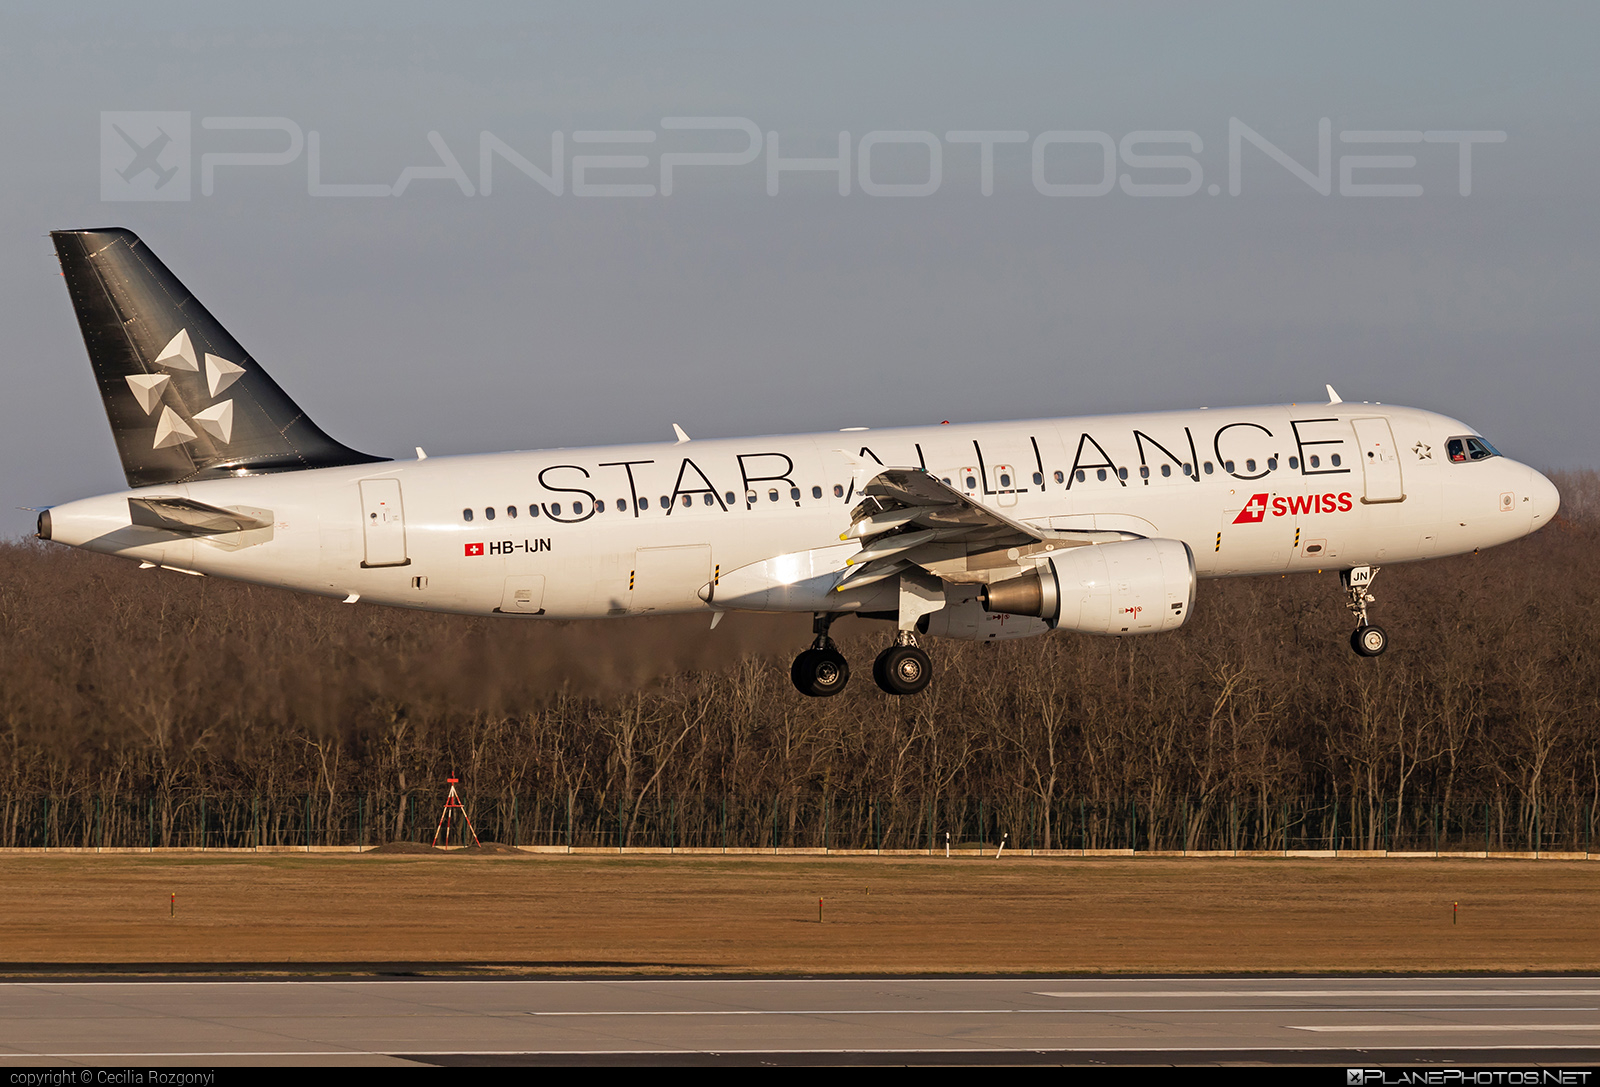 Airbus A320-214 - HB-IJN operated by Swiss International Air Lines #a320 #a320family #airbus #airbus320 #staralliance #swiss #swissairlines